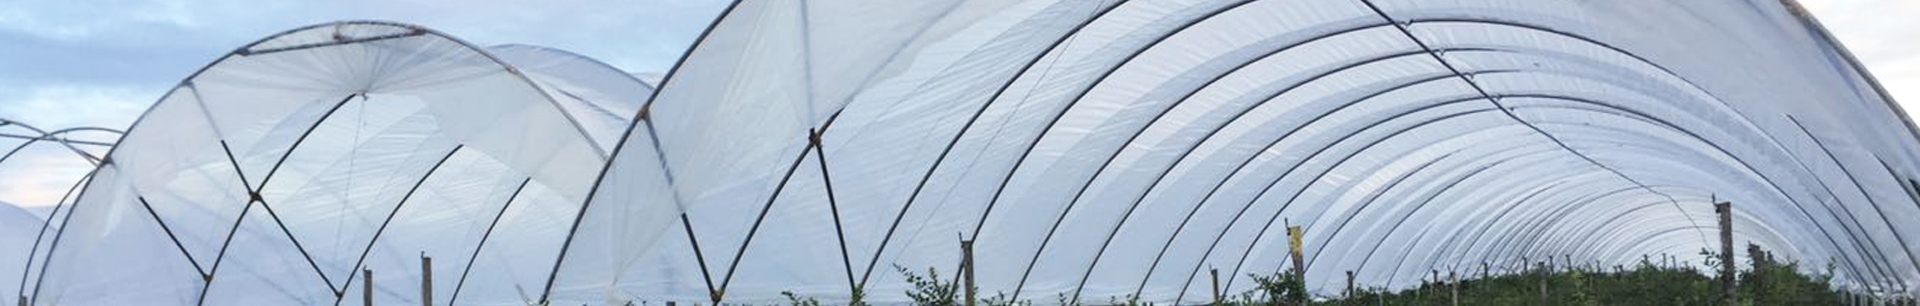 Agrow high tunnel poly hoop house (ACS)2